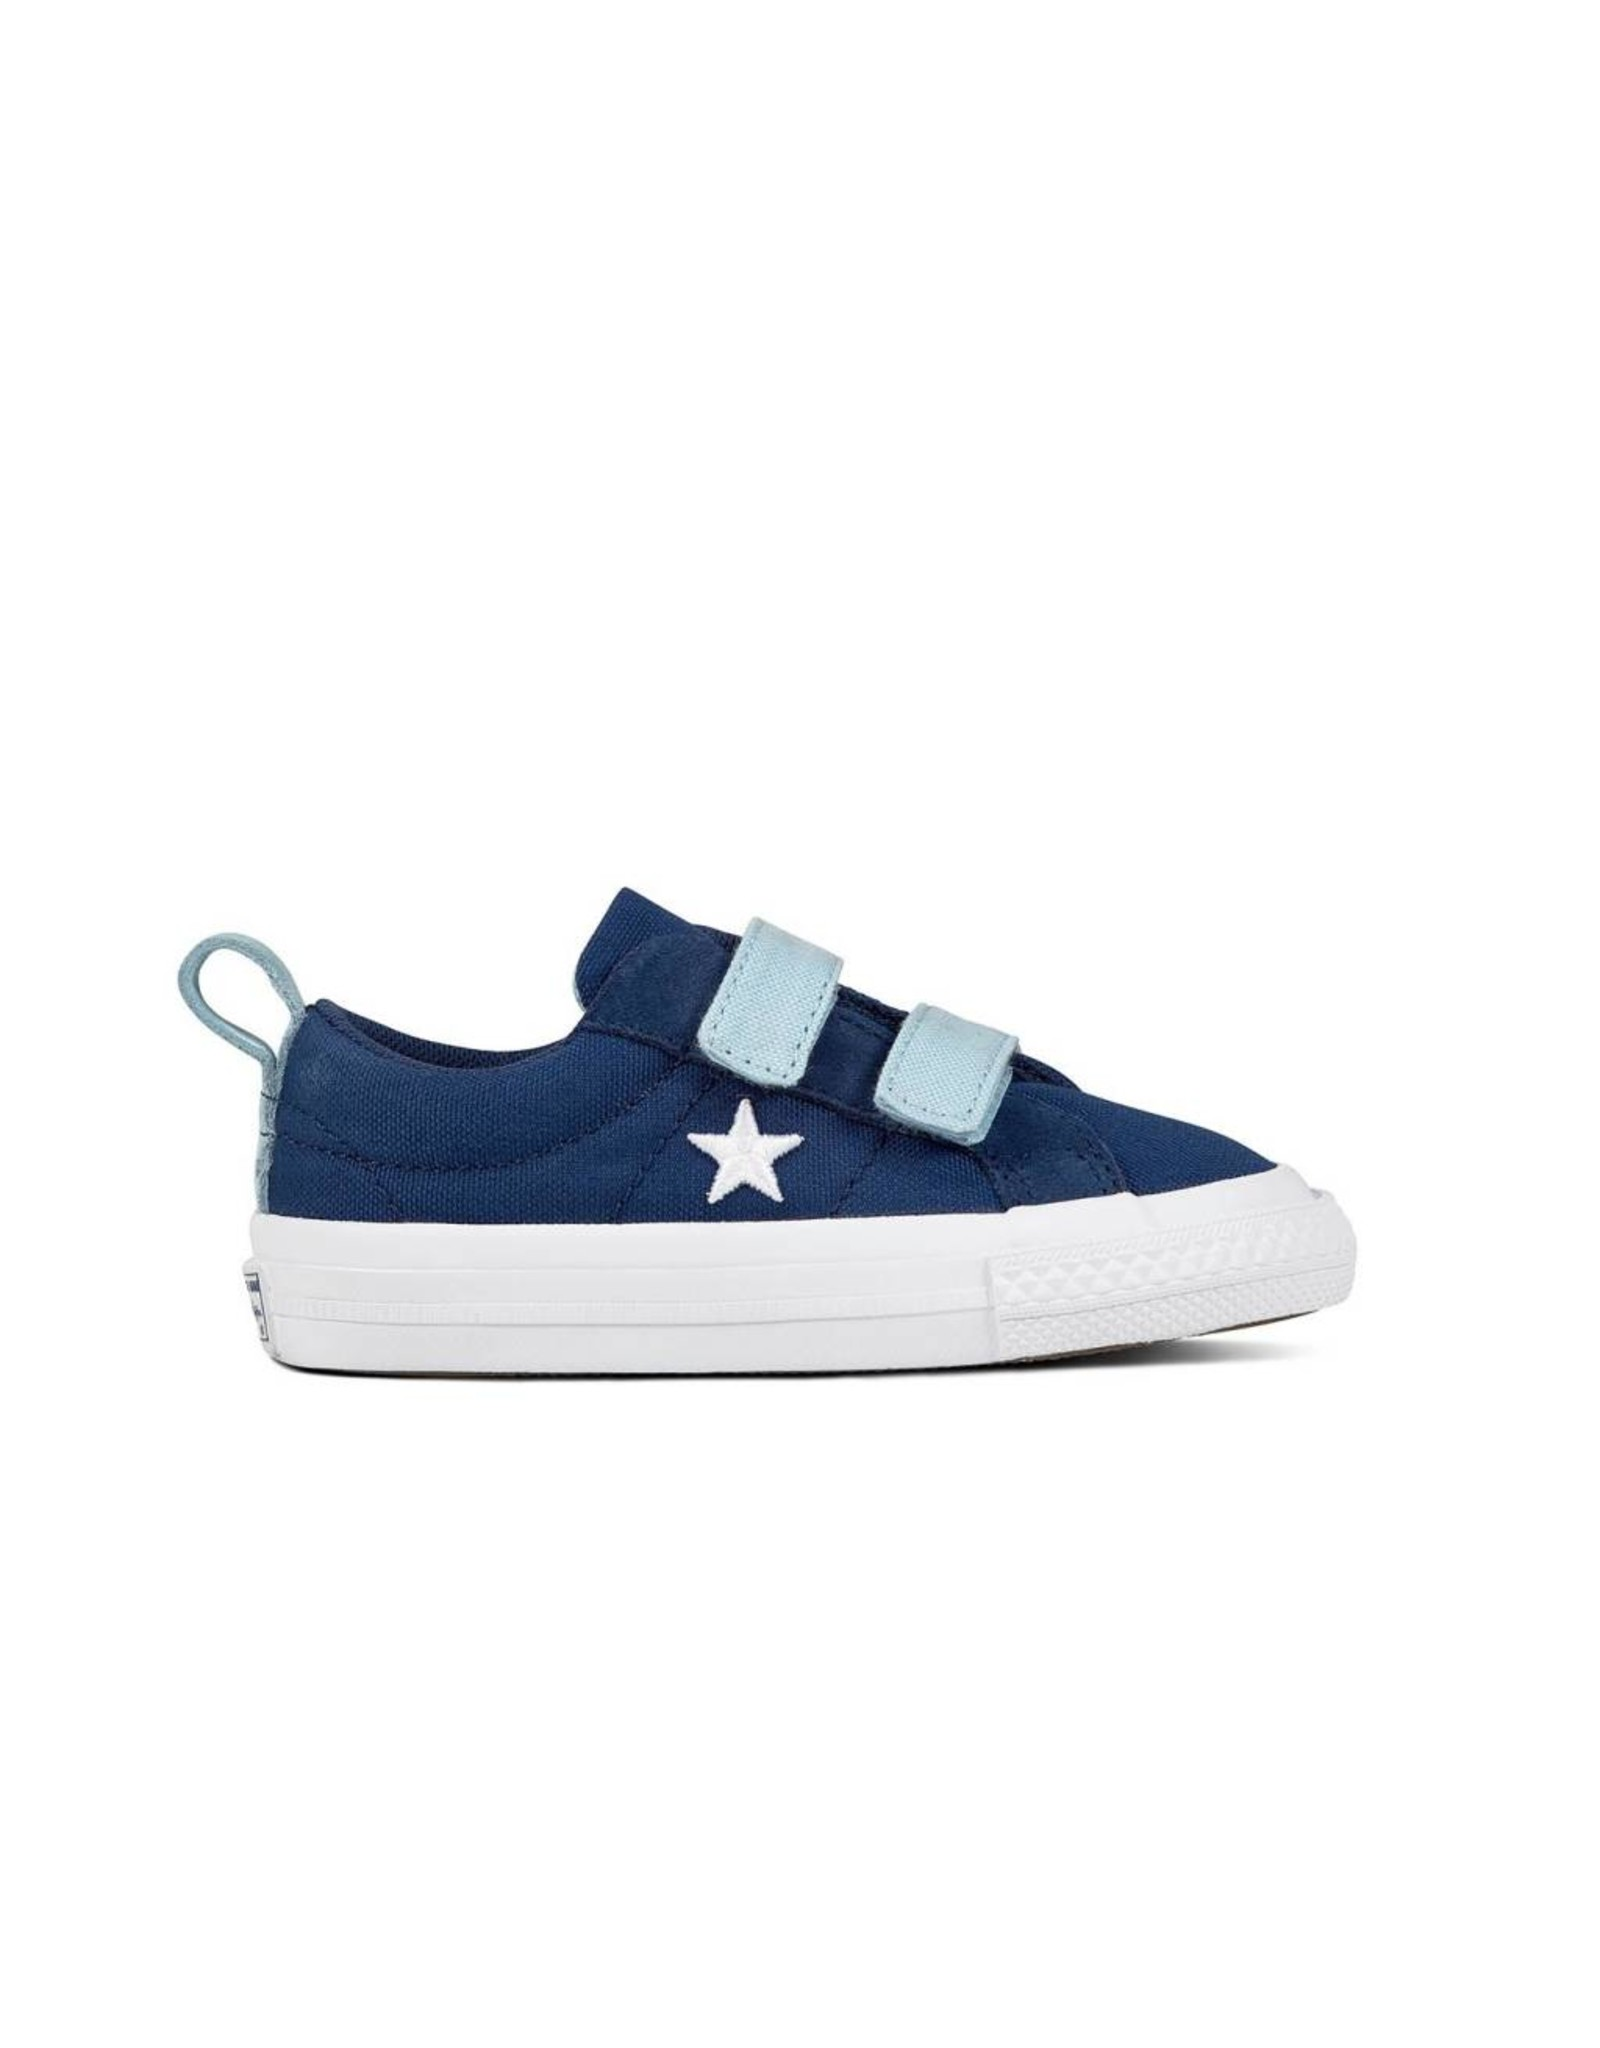 CONVERSE ONE STAR 2V OX NAVY/OCEAN BLISS/WHITE CRVO-760763C